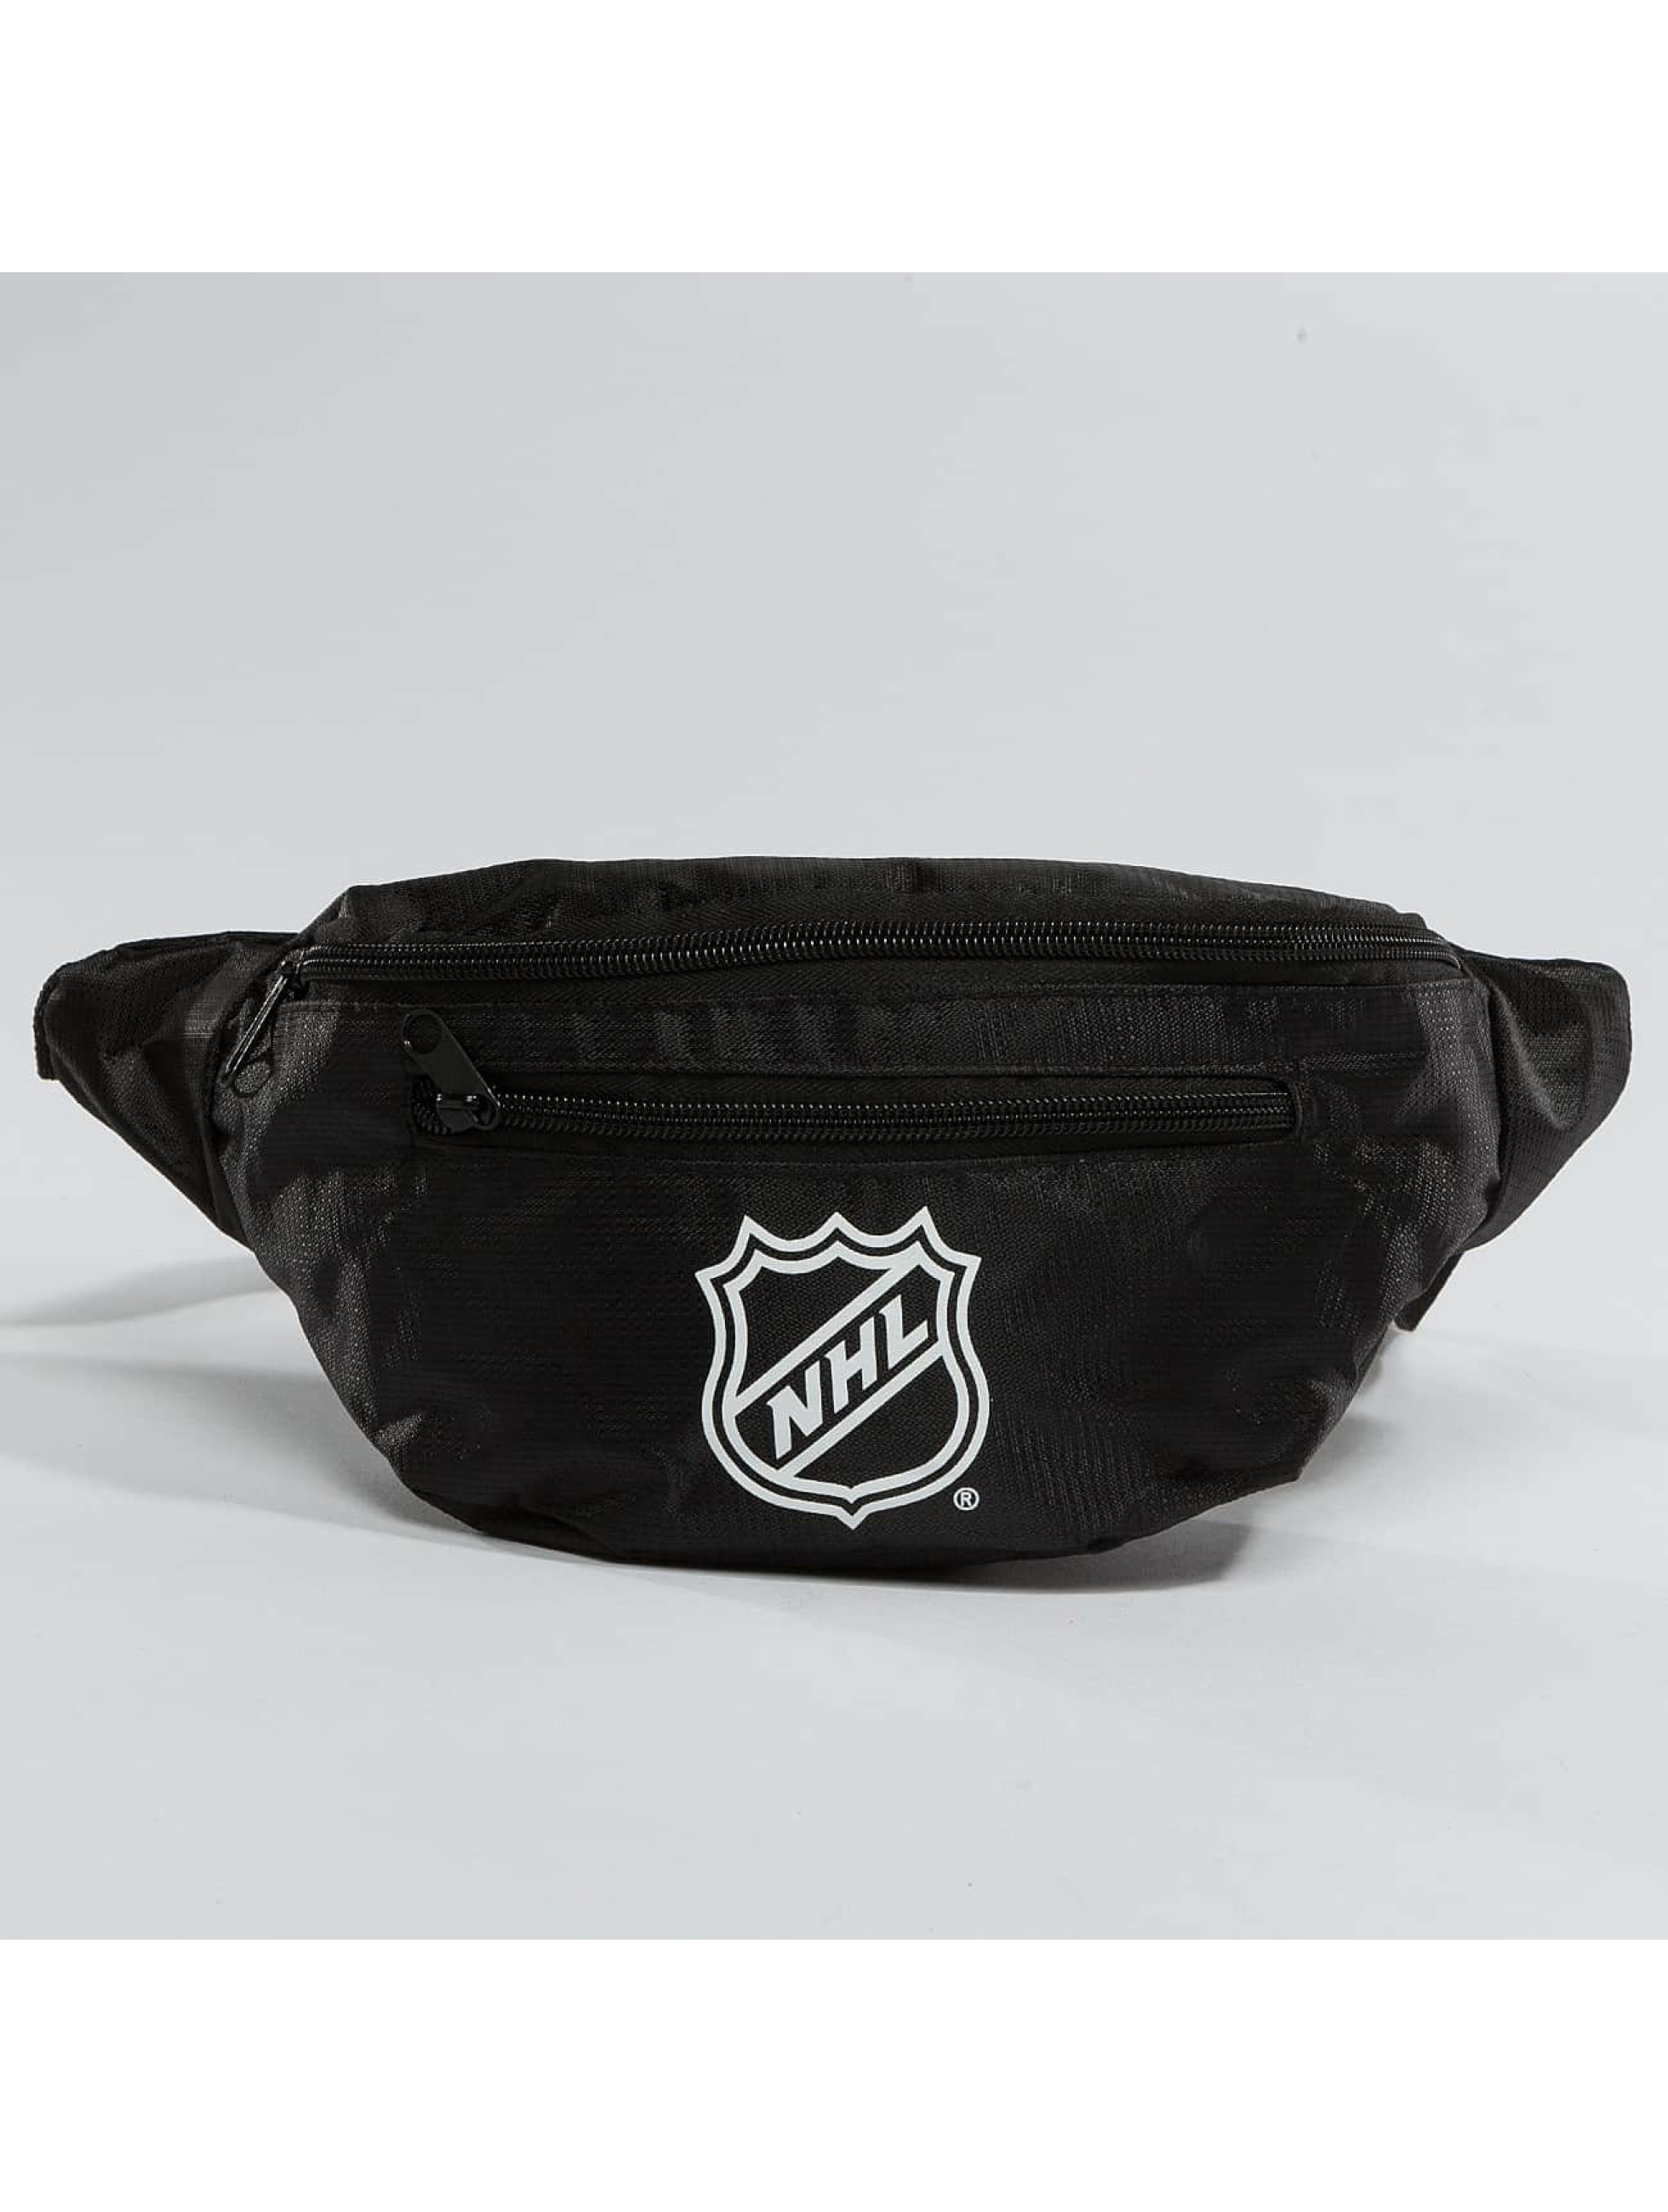 Forever Collectibles Taske/Sportstaske NHL Logo sort